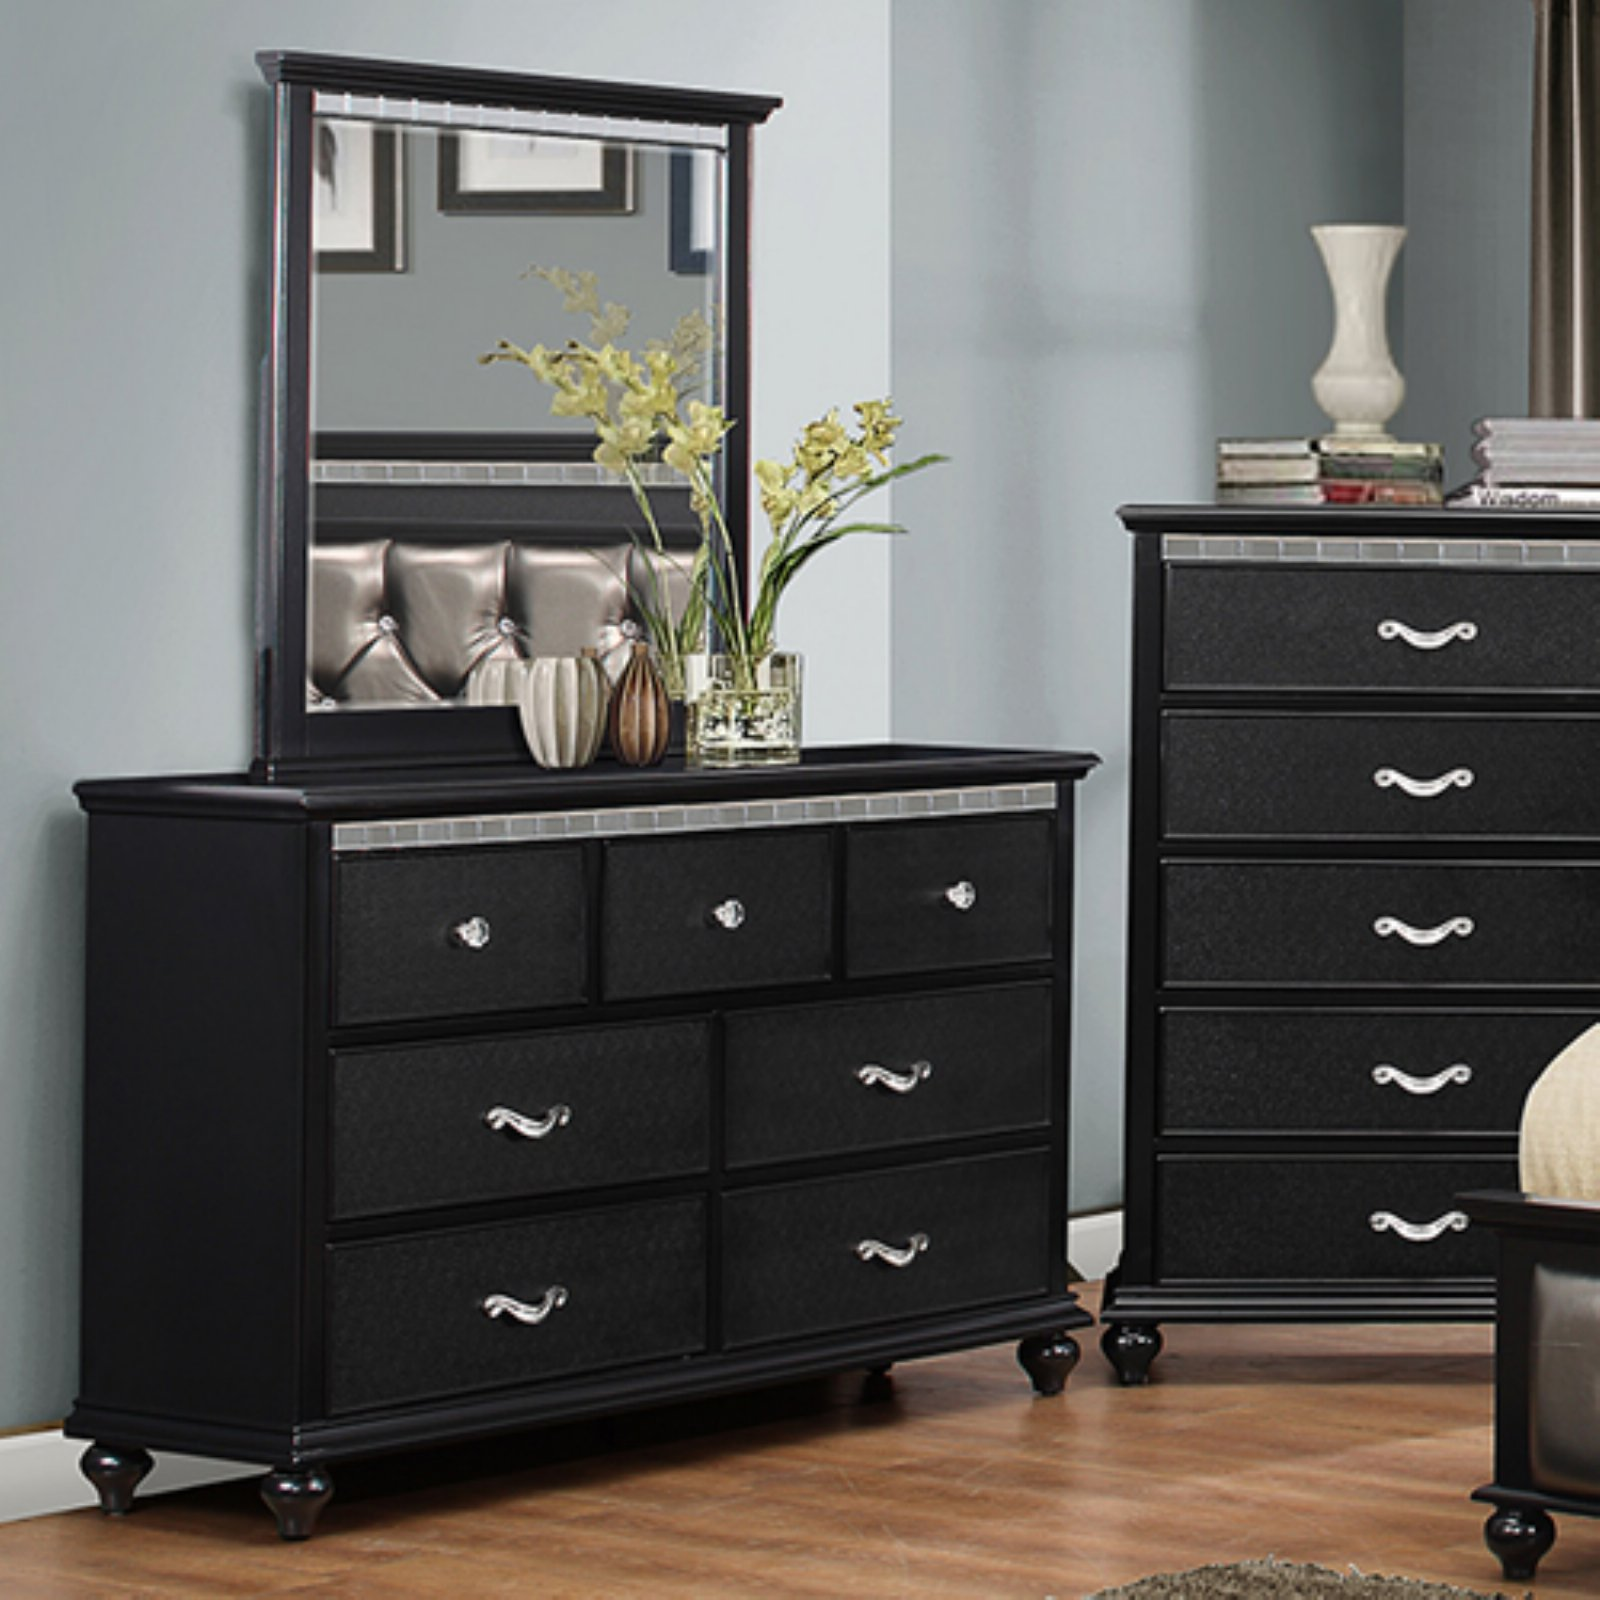 K&B Furniture Hollywood Wood Bedroom Dresser with Optional Mirror